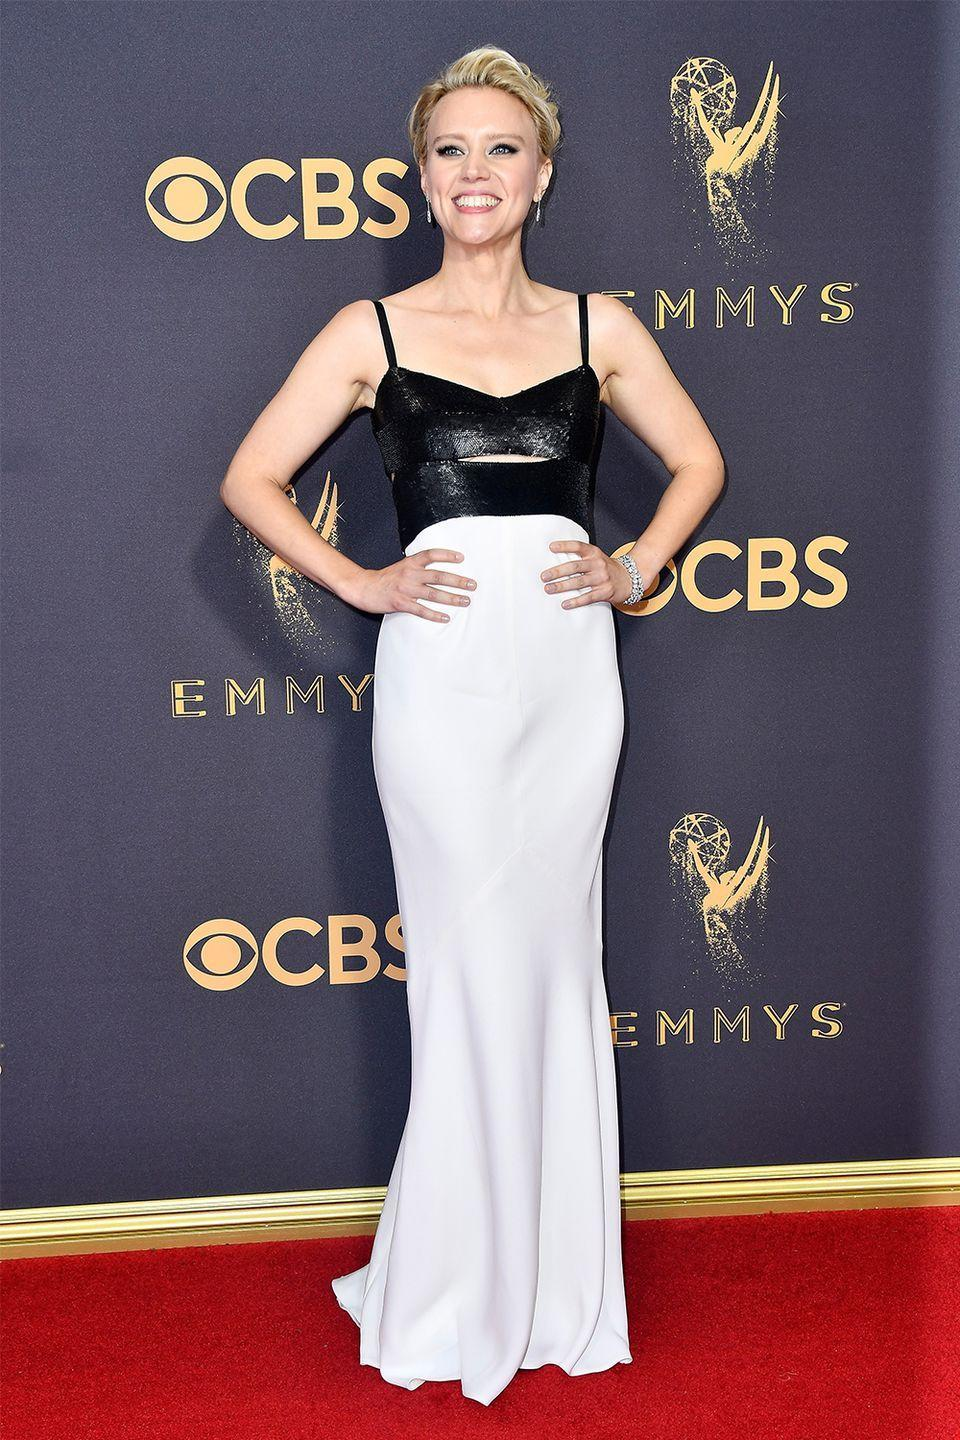 <p>Awards-show winner. Literally. With the dress, and the updo, and the makeup, and the actual award for best supporting actress.</p>